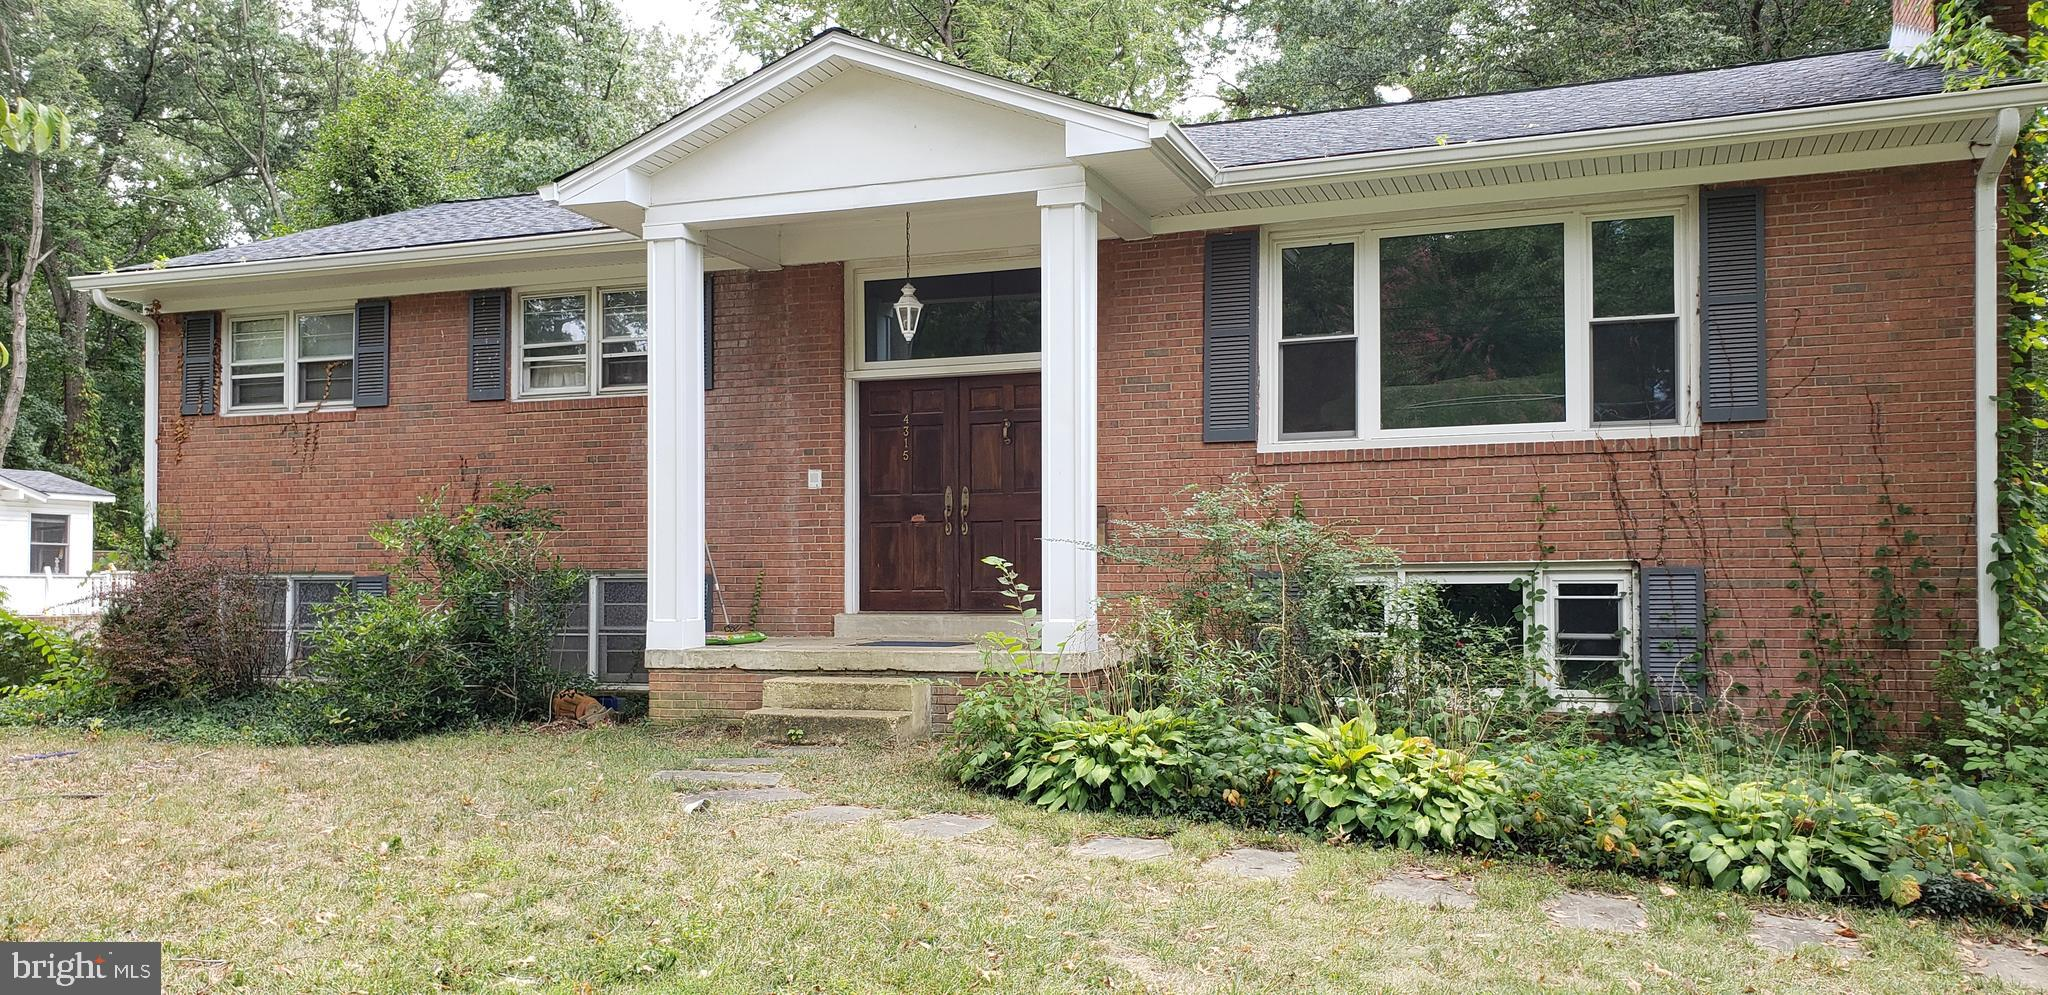 A rare opportunity for under $500,000 in the heart of Historic Mount Vernon! Come see this sturdy, all-brick home with a beautiful yard, that boasts recent upgrades that include the roof replacement, gutters/soffits, HVAC, and Furnace. This home is ready to be enjoyed now, but is waiting for your personal touches to make it your own. The spacious kitchen and family room are perfect for an open floor plan conversion, and the size of the rooms and closets are definitely worth noting. Enjoy the screened porch, private and flat backyard, and a peaceful and serene wooded landscape~perfect for entertaining. The lower level features huge storage opportunities, and the lower living area is flooded with natural light, and features a walk-out exit/entry! Minutes from the scenic George Washington Memorial Parkway, Fort Belvoir, Wegmans, and more. This home has been enjoyed by the current owner, it is exciting to see what the next chapter will hold for this lovely Mount Vernon Home!